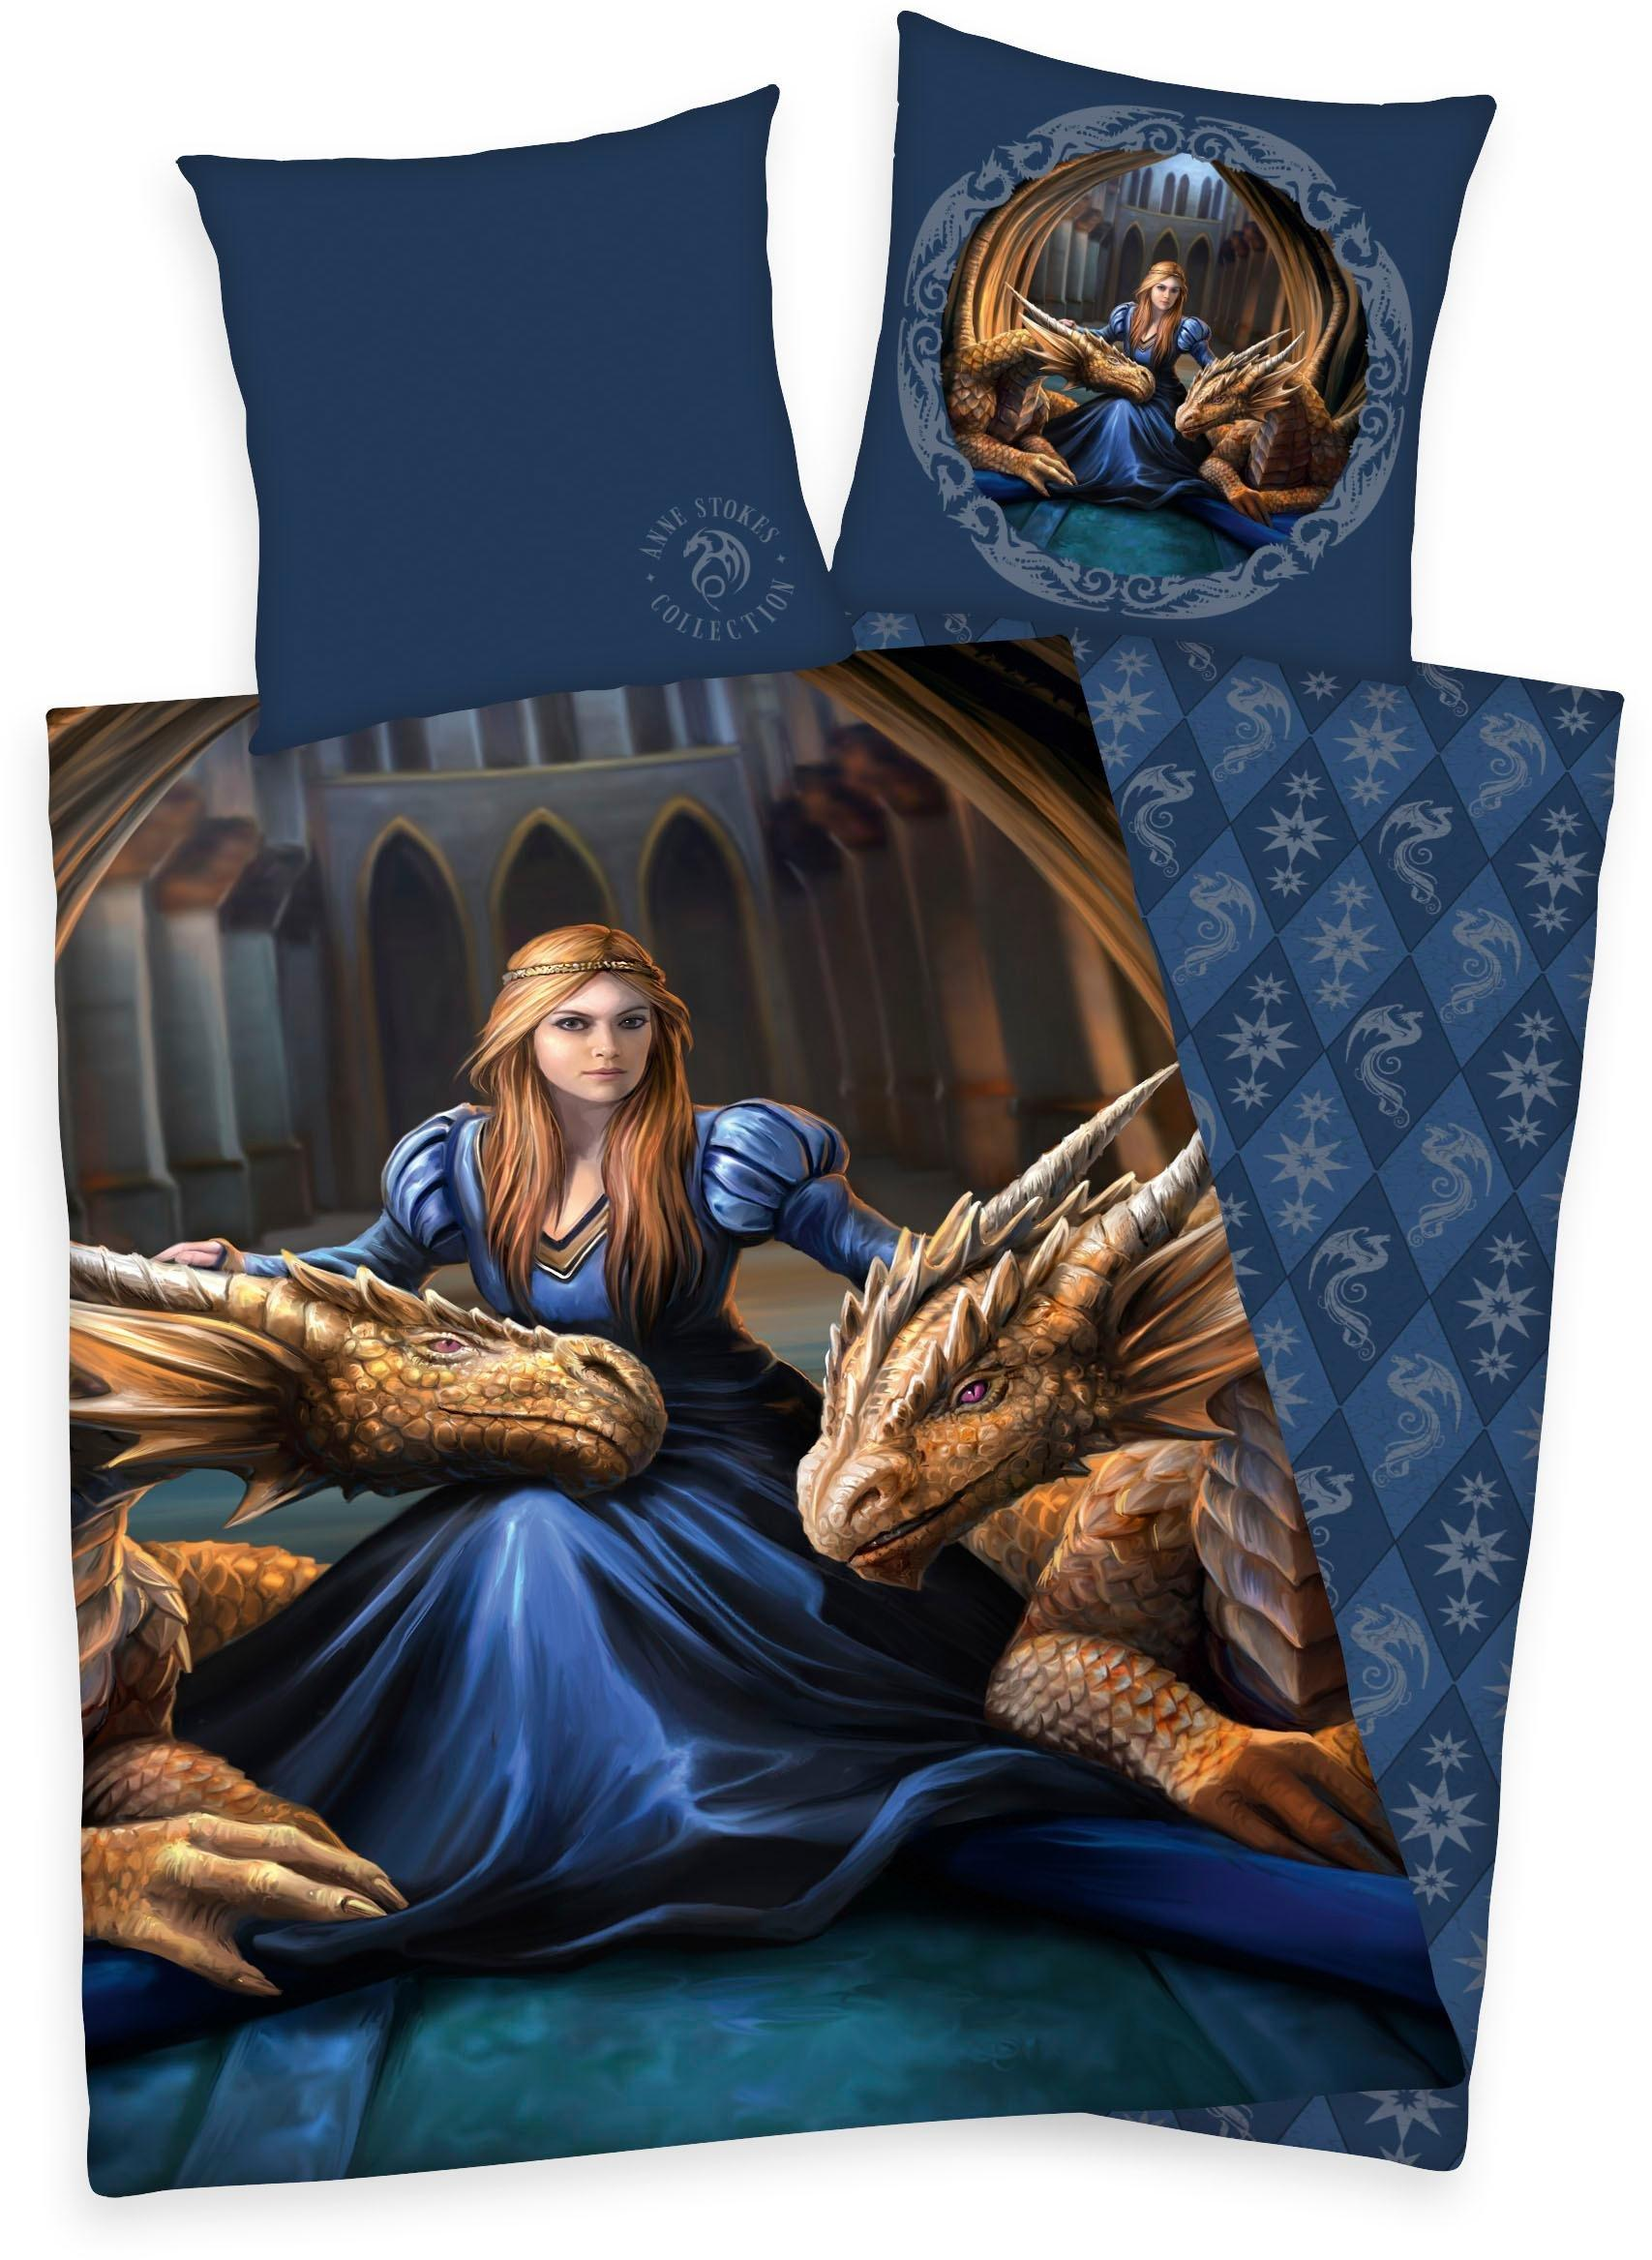 Fosshop Fantasy Bettwäsche Loyalty Anne Stokes